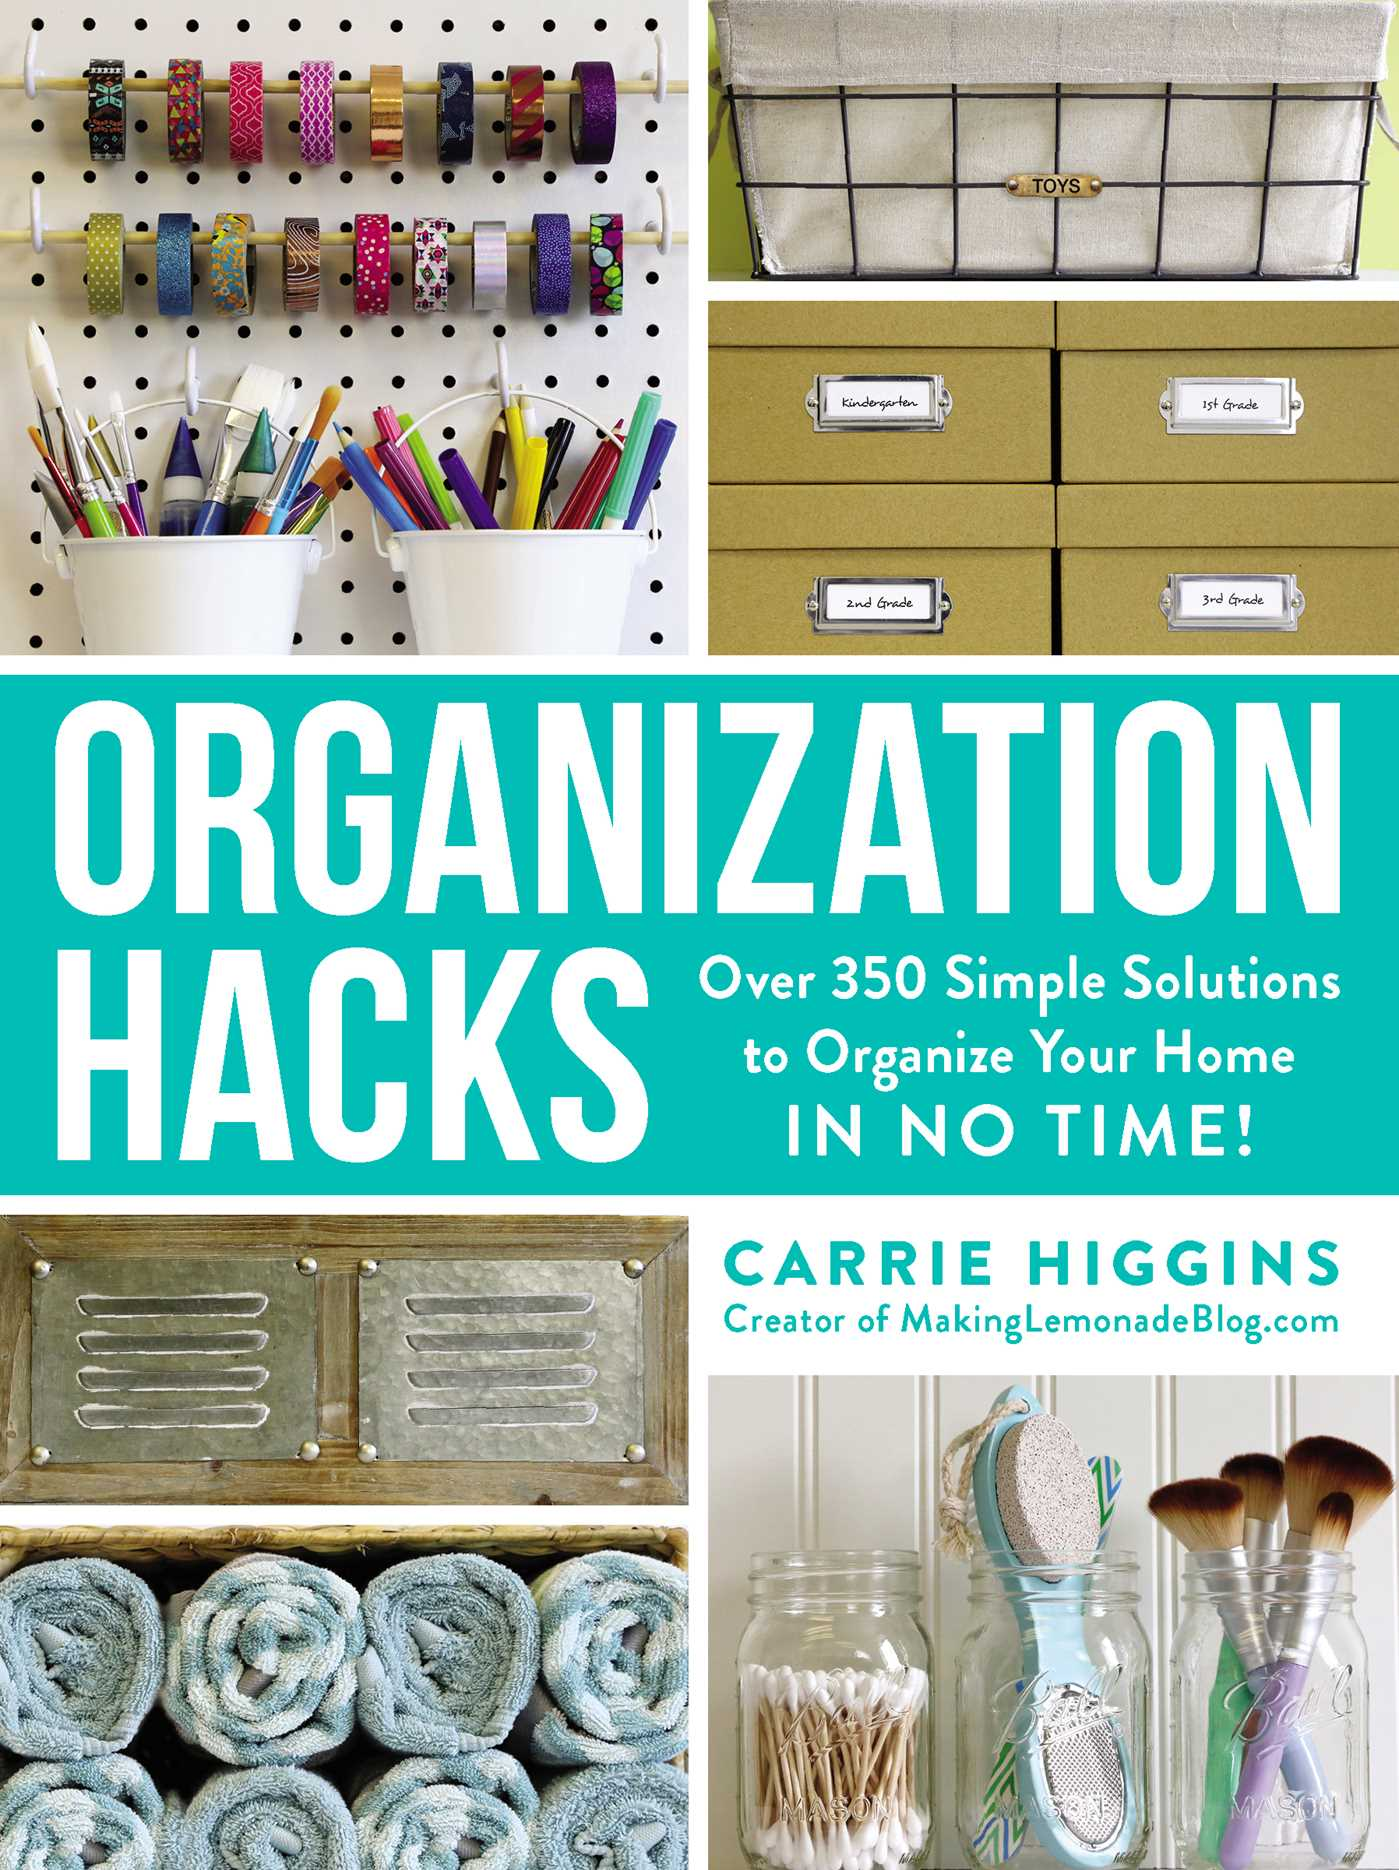 Organization Hacks Over 350 Simple Solutions to Organize Your Home in No Time!